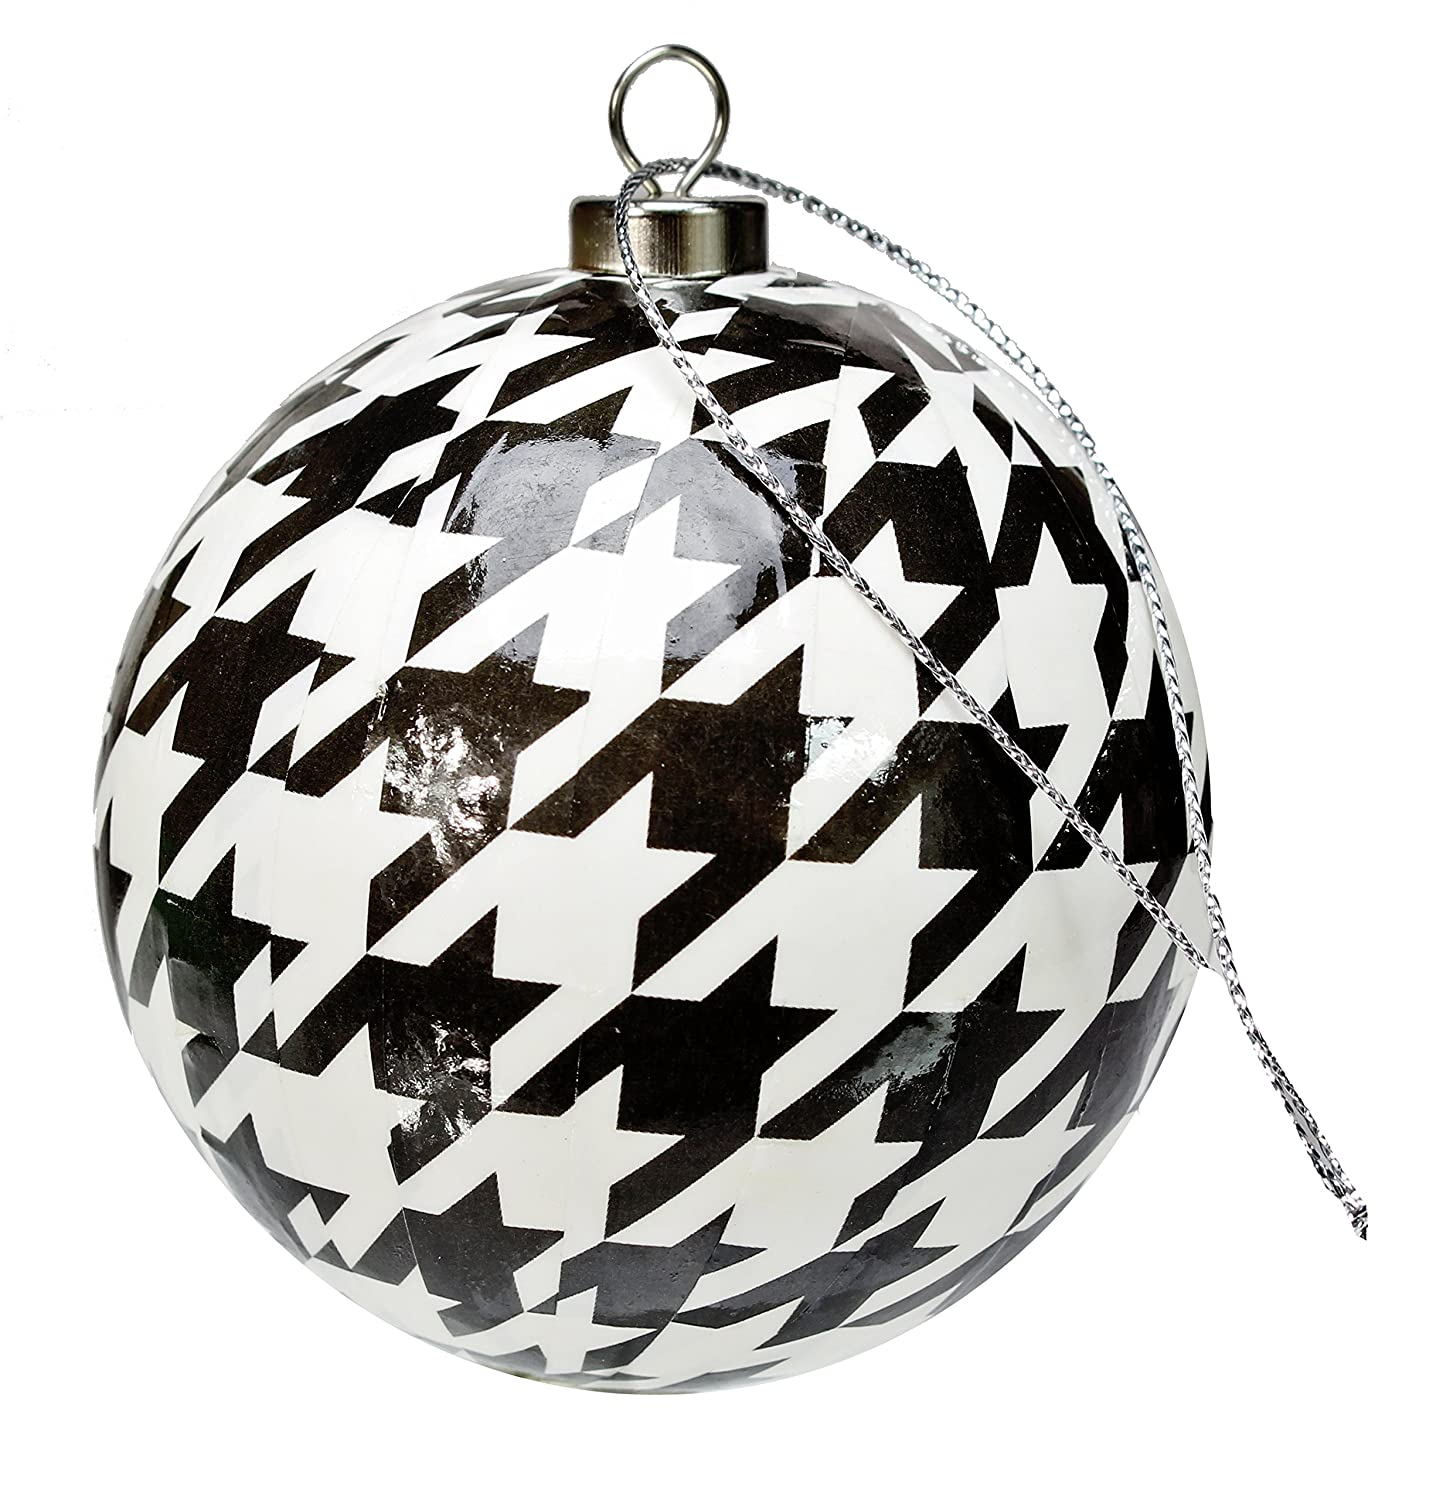 amazoncom black and white check christmas ornaments 4 pack houndstooth party collection by havercamp home kitchen